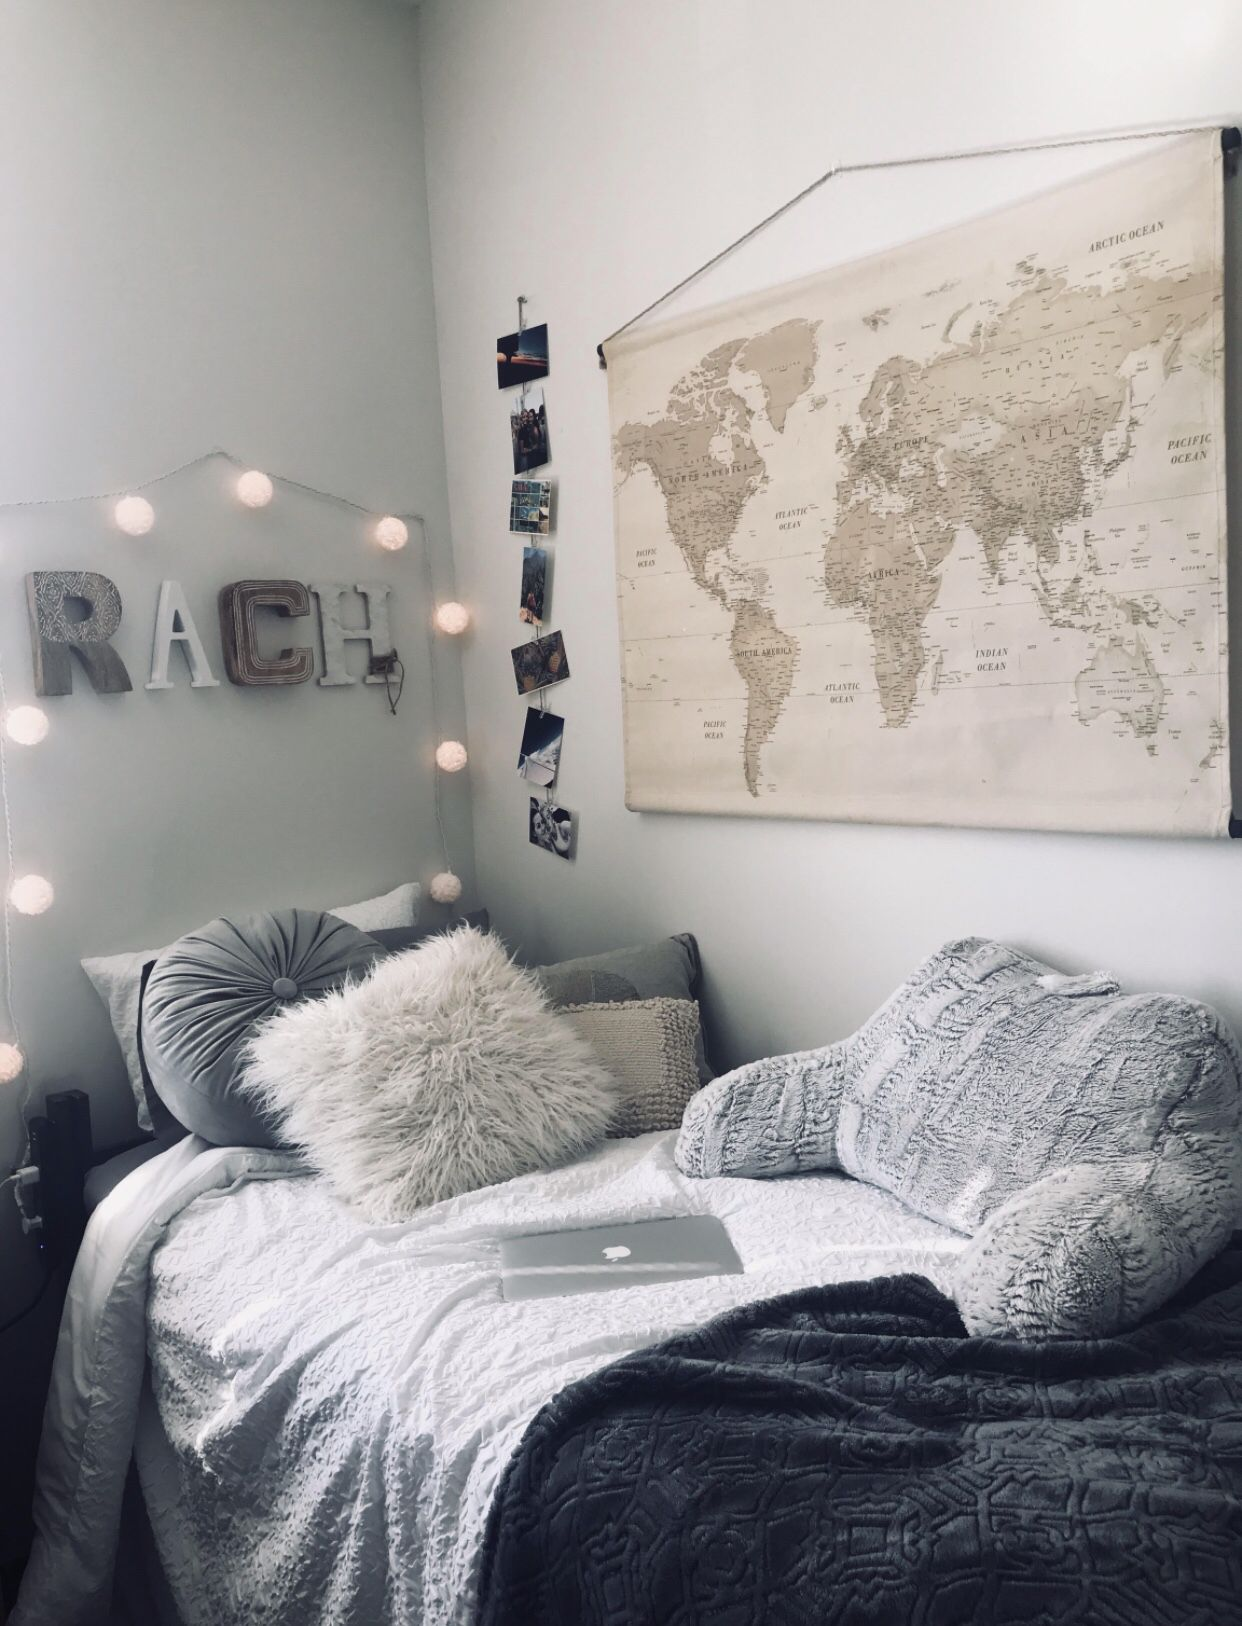 Aesthetic Dorm Room: Vintage Map Tapestry Wall Decor